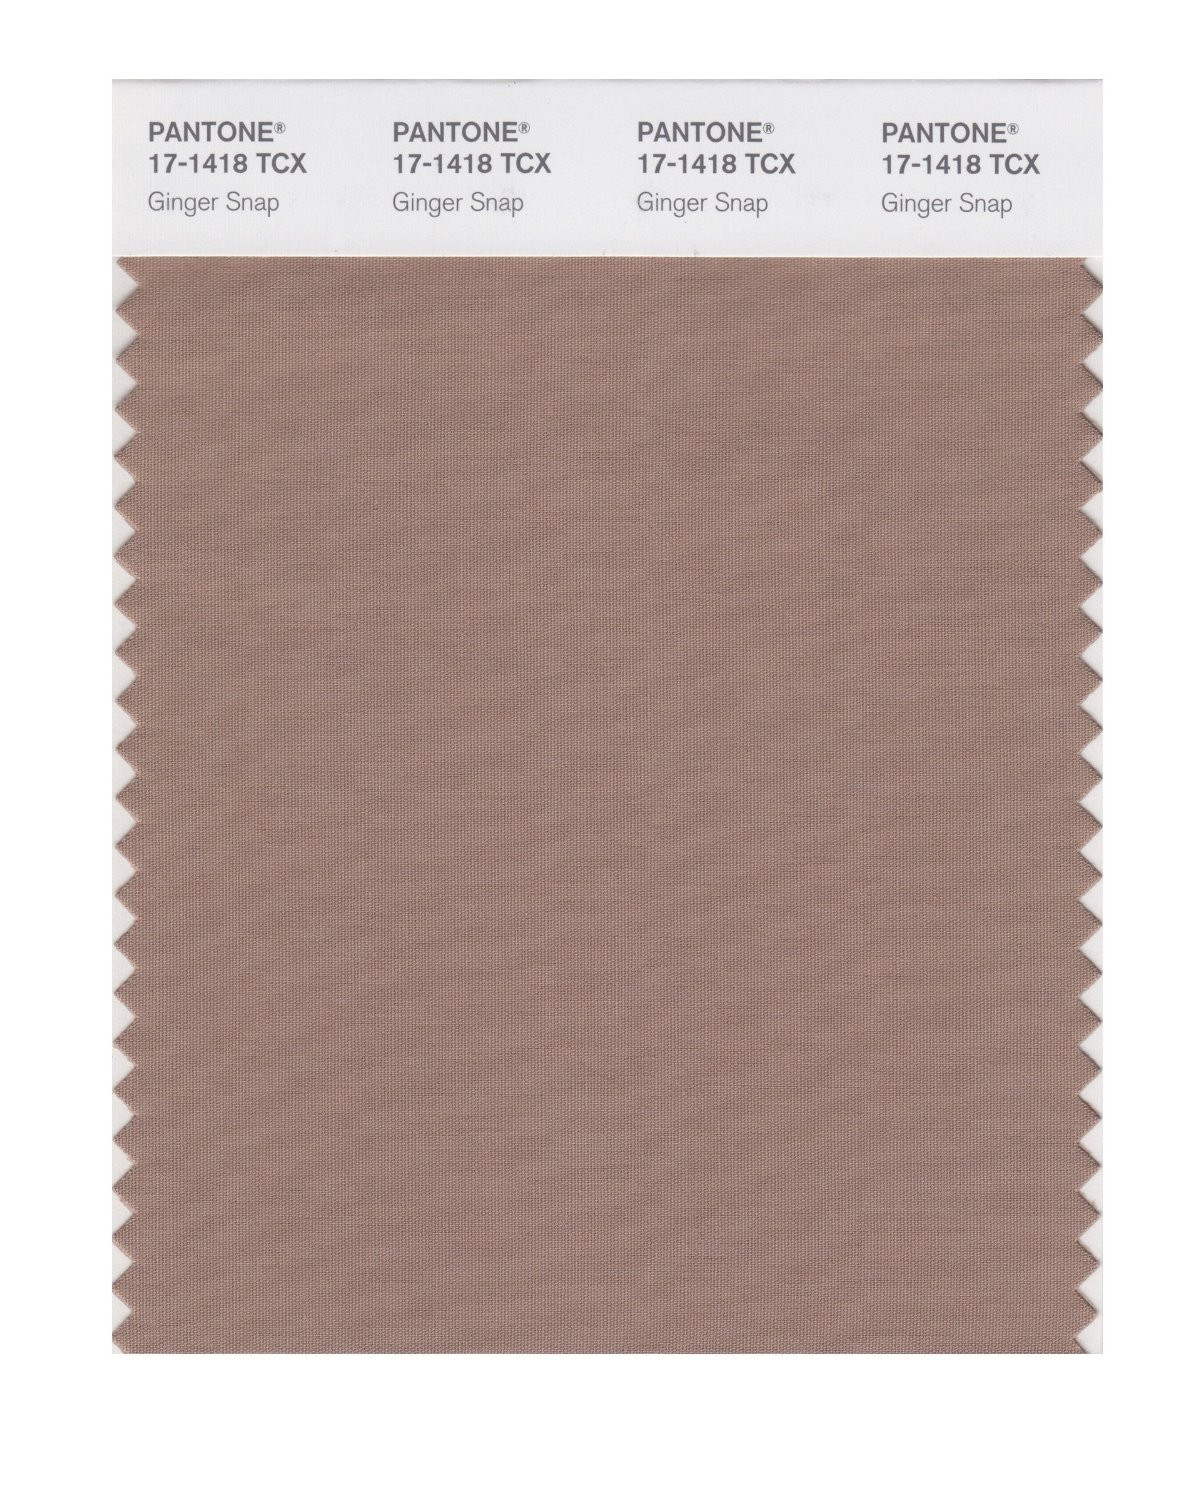 Pantone 17-1418 TCX Swatch Card Ginger Snap